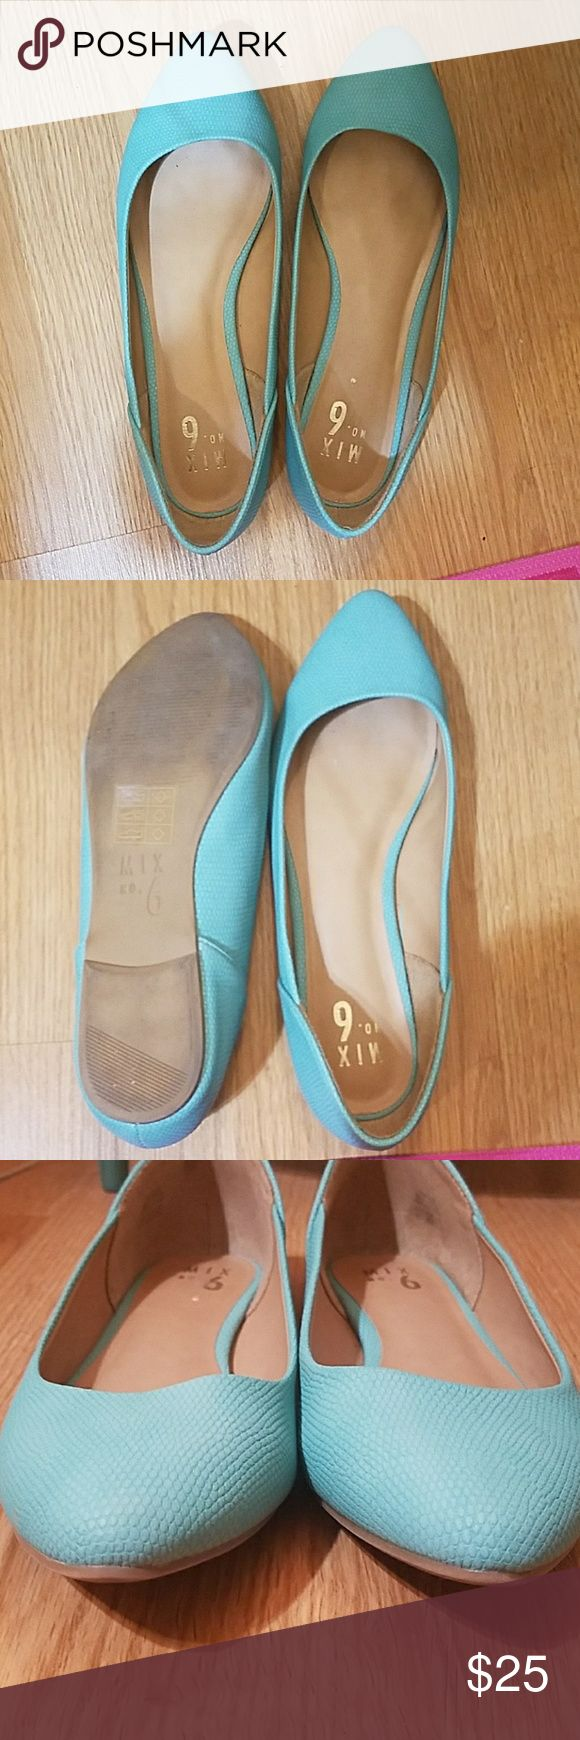 Mix No 6 turquoise flats. Worn twice. Comfortable flat. Turquoise with tan insole. Small scratch inside right shoe. (Scratched with fingernail when removing price tag) Mix No. 6 Shoes Flats & Loafers